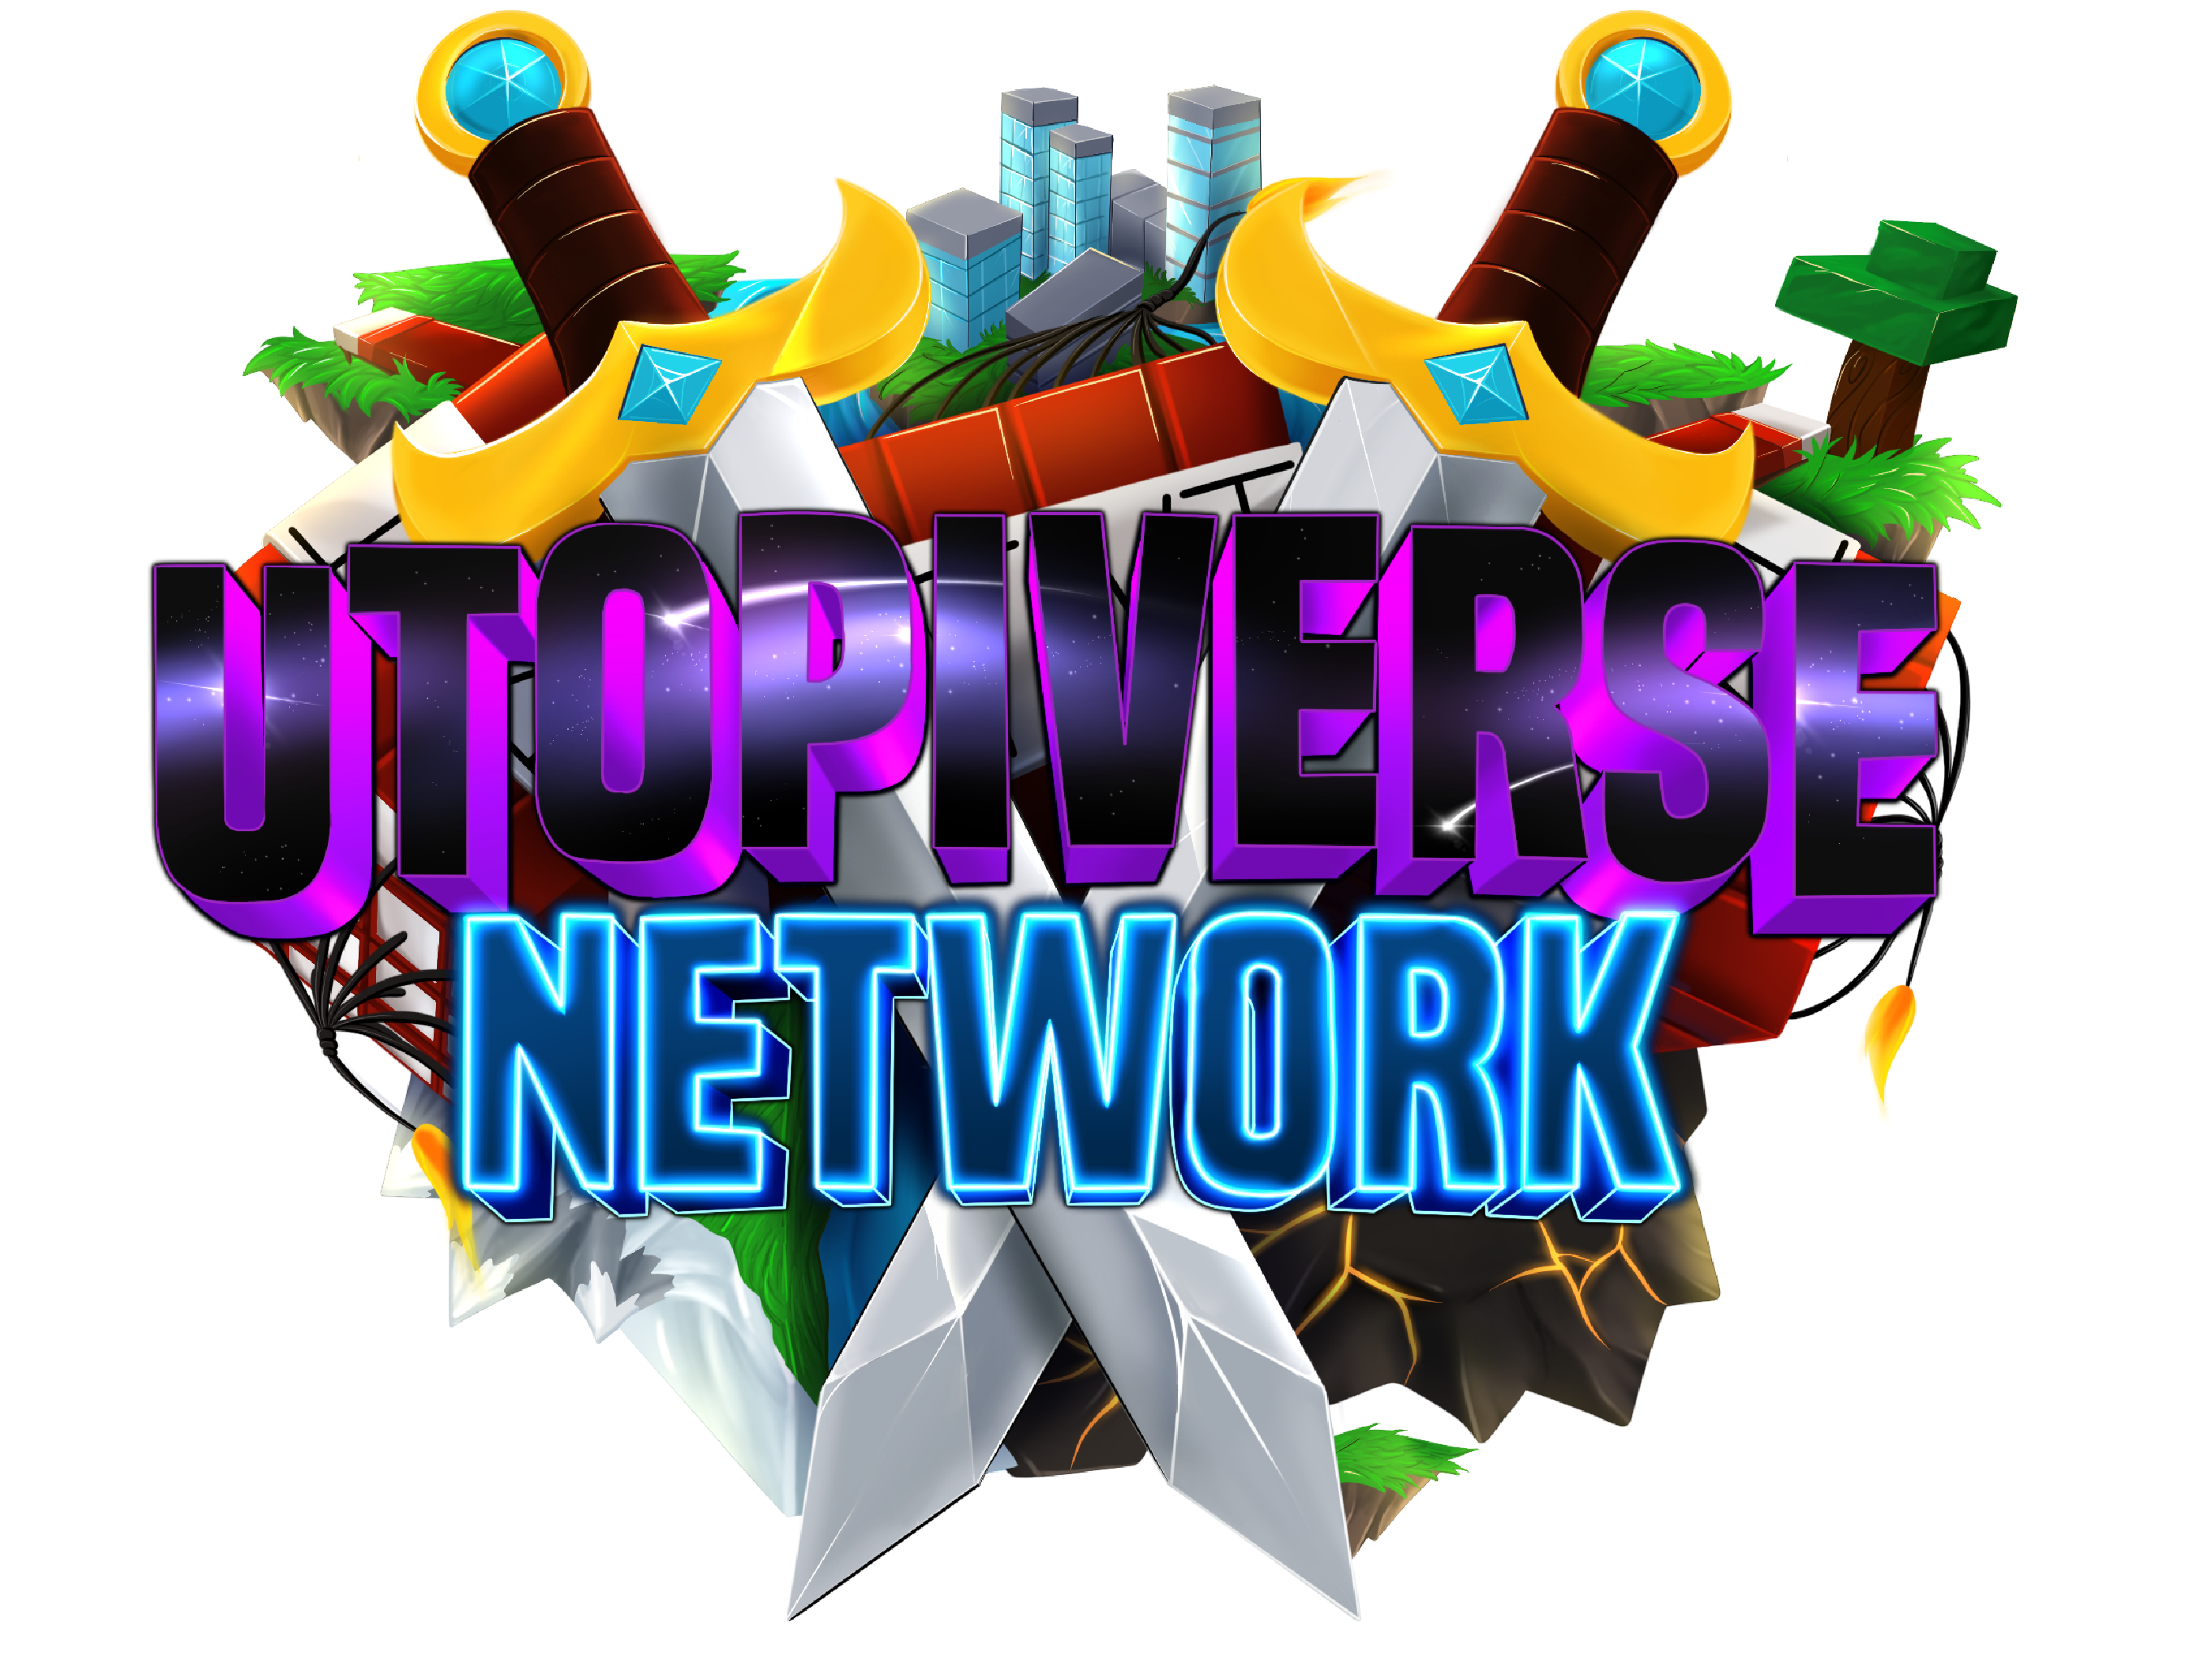 Utopiverse Network Official